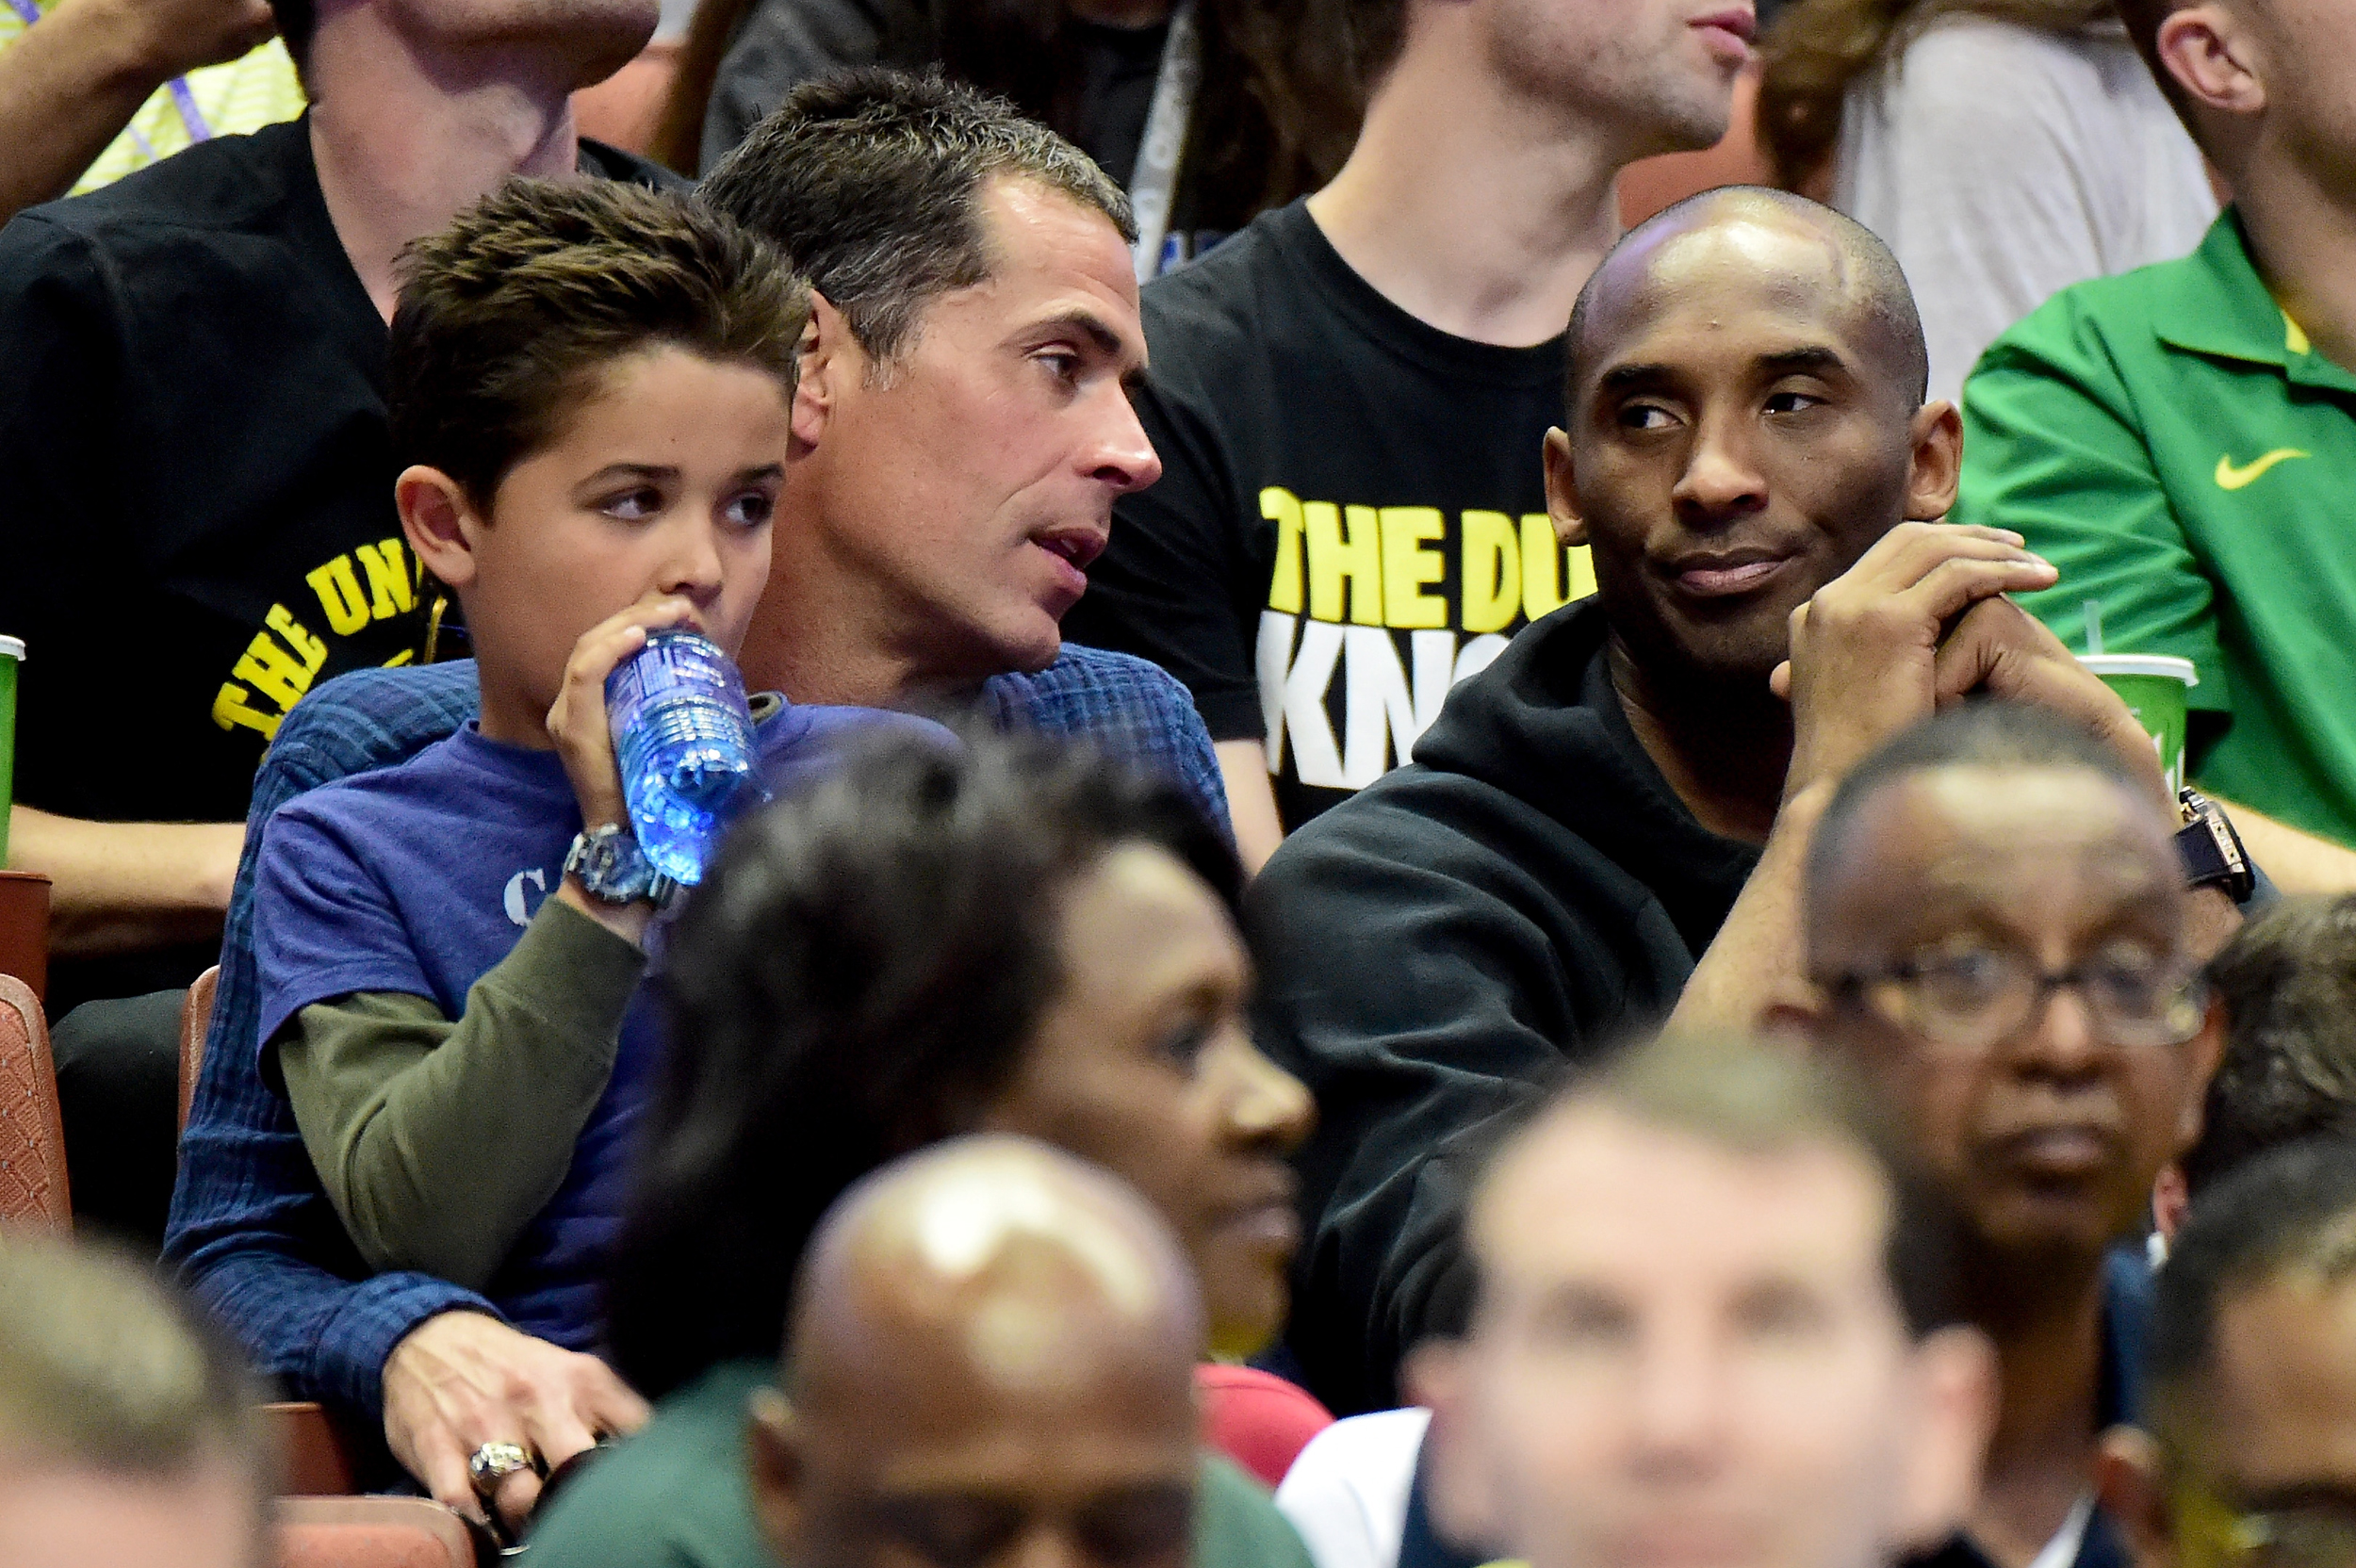 Agent Rob Pelinka talks with Kobe Bryant during the NCAA Men's Basketball Tournament West Regional Final at Honda Center on March 26, 2016 in Anaheim, California.